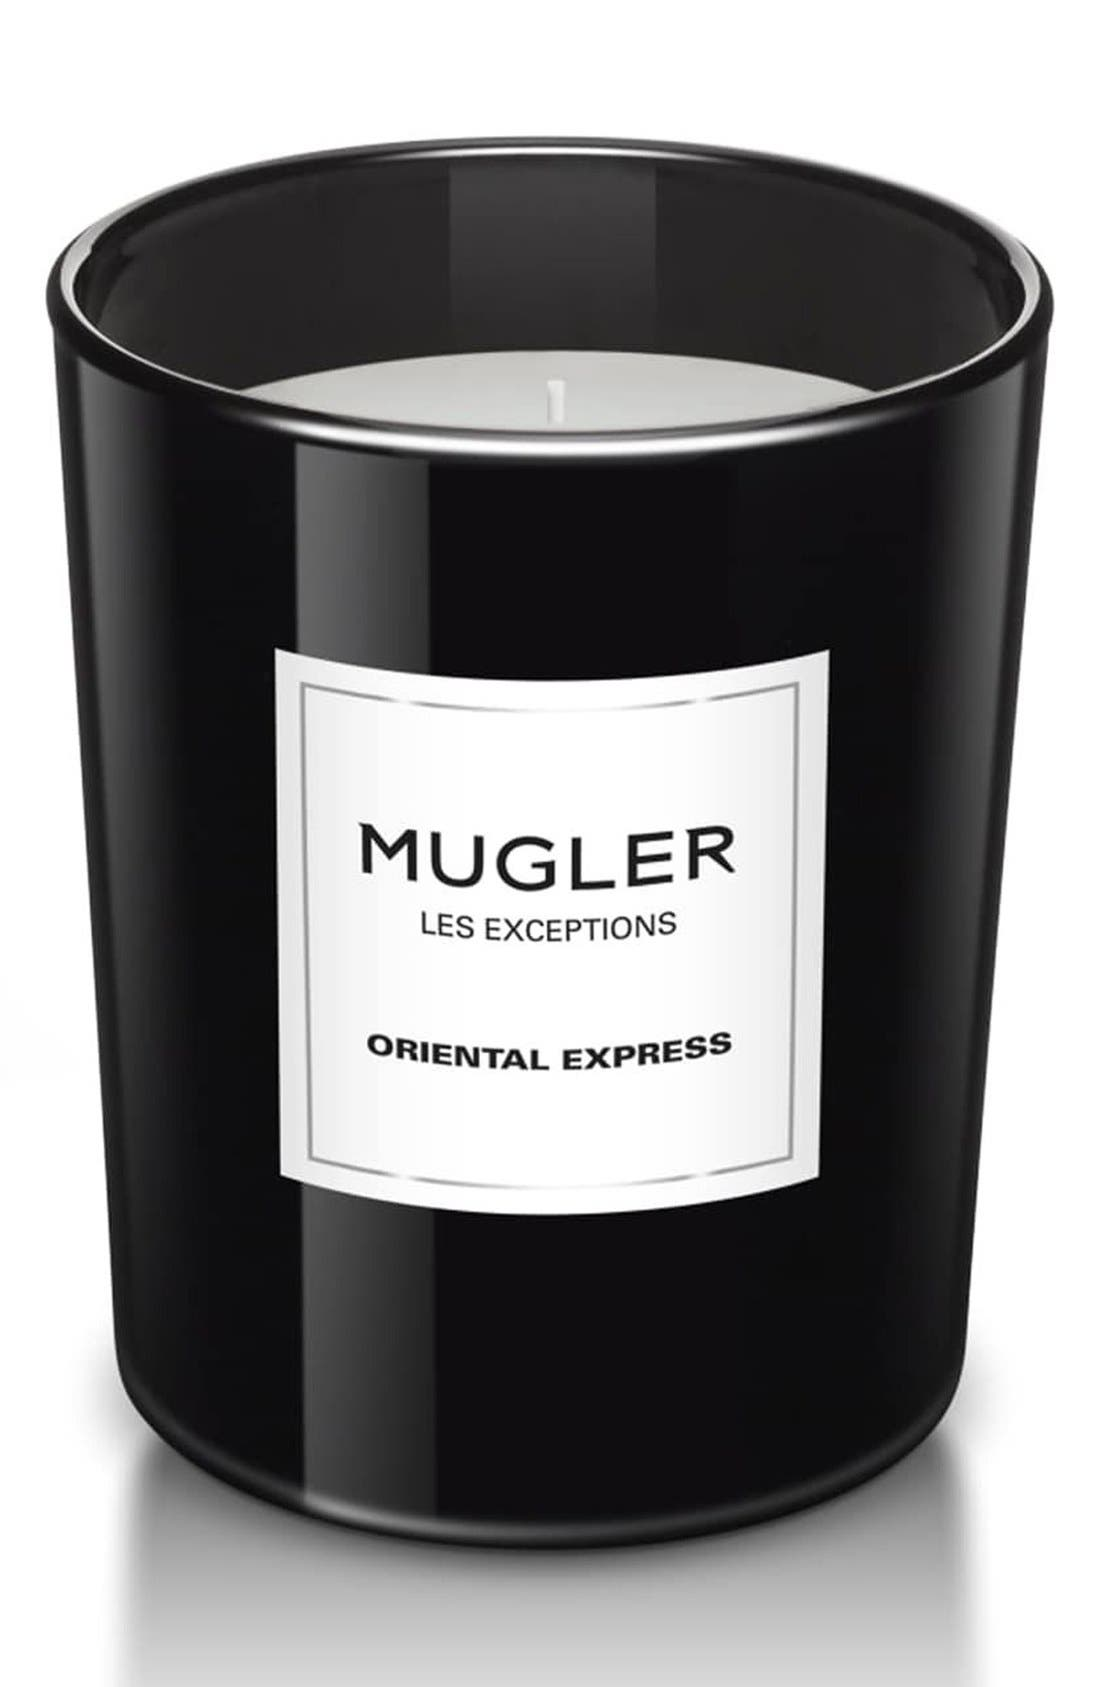 Mugler 'Les Exceptions - Oriental Express' Candle,                             Main thumbnail 1, color,                             No Color